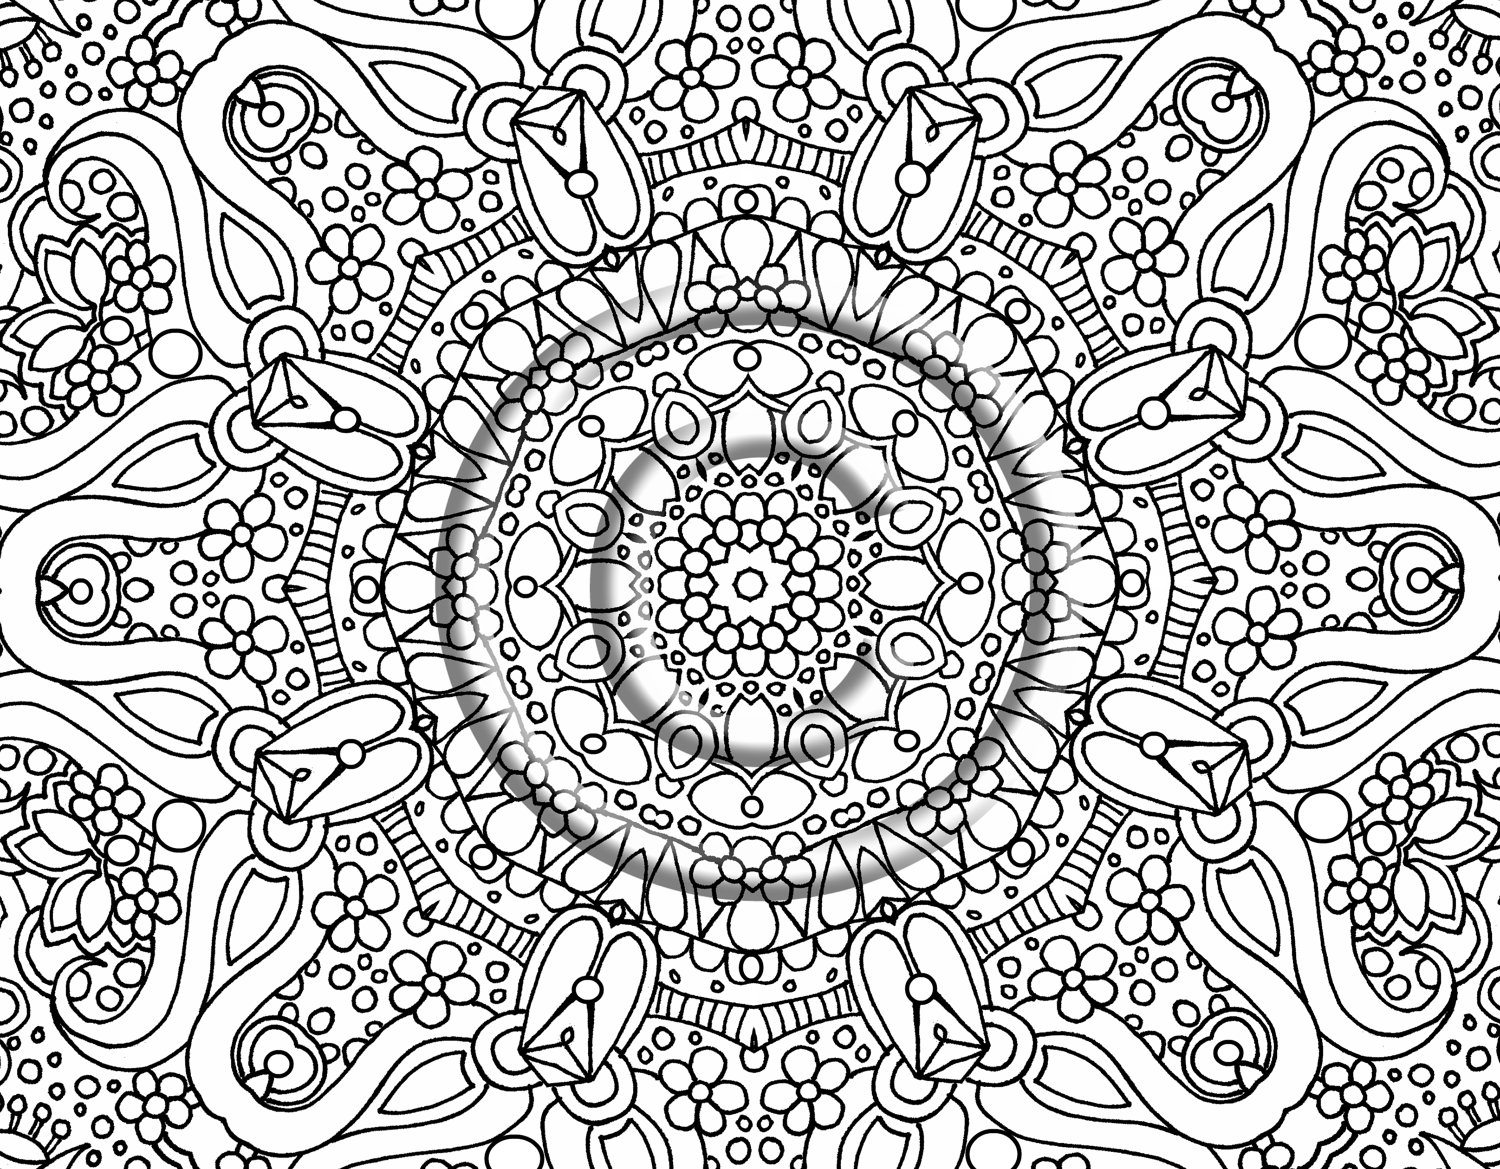 difficult coloring pages for adults difficult coloring pages for adults mushroom coloring page adults pages difficult for coloring